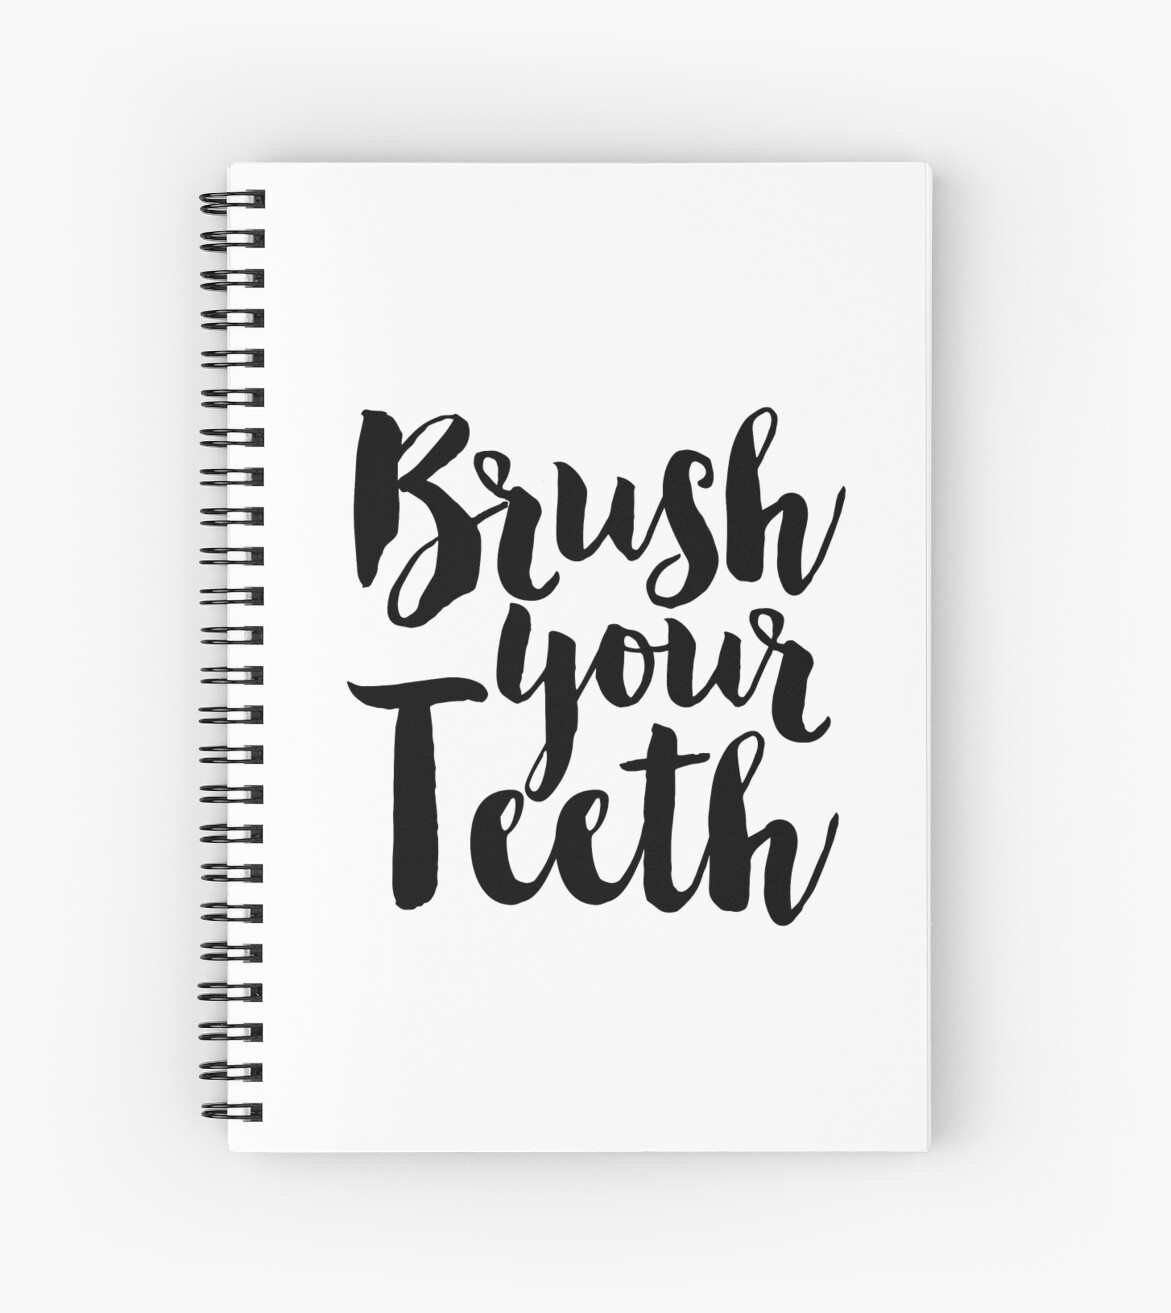 printable wall art, brush your teeth,bathroom sign,bathroom wall art